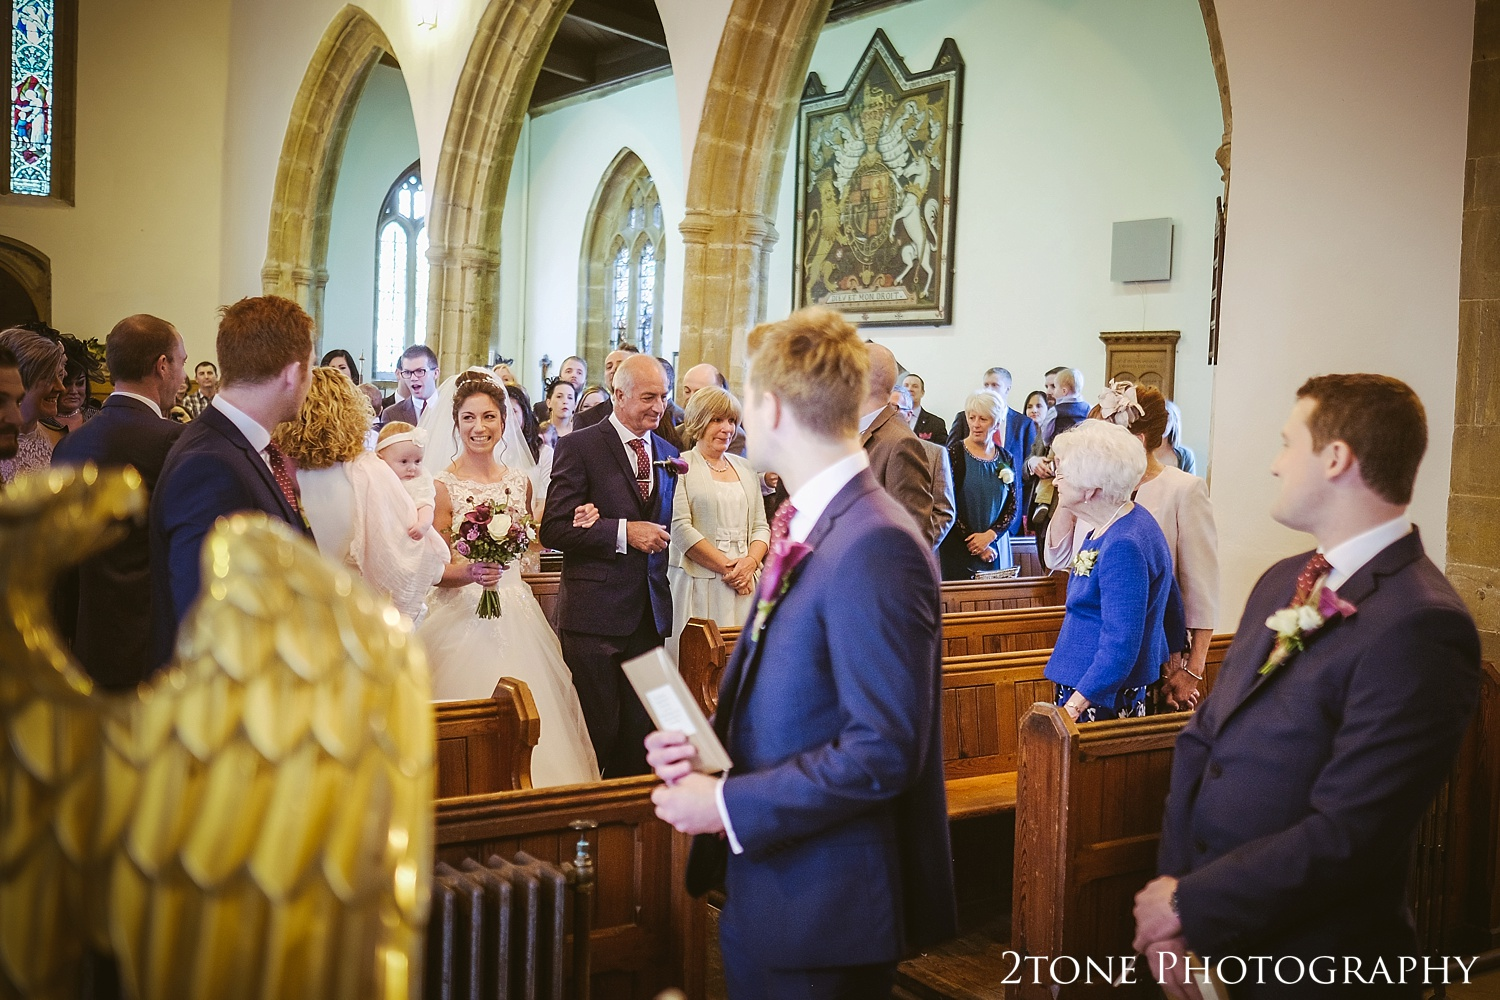 Wedding photography in Somerset by husband and wife team 2tone Photography ww.2tonephotography.co.uk